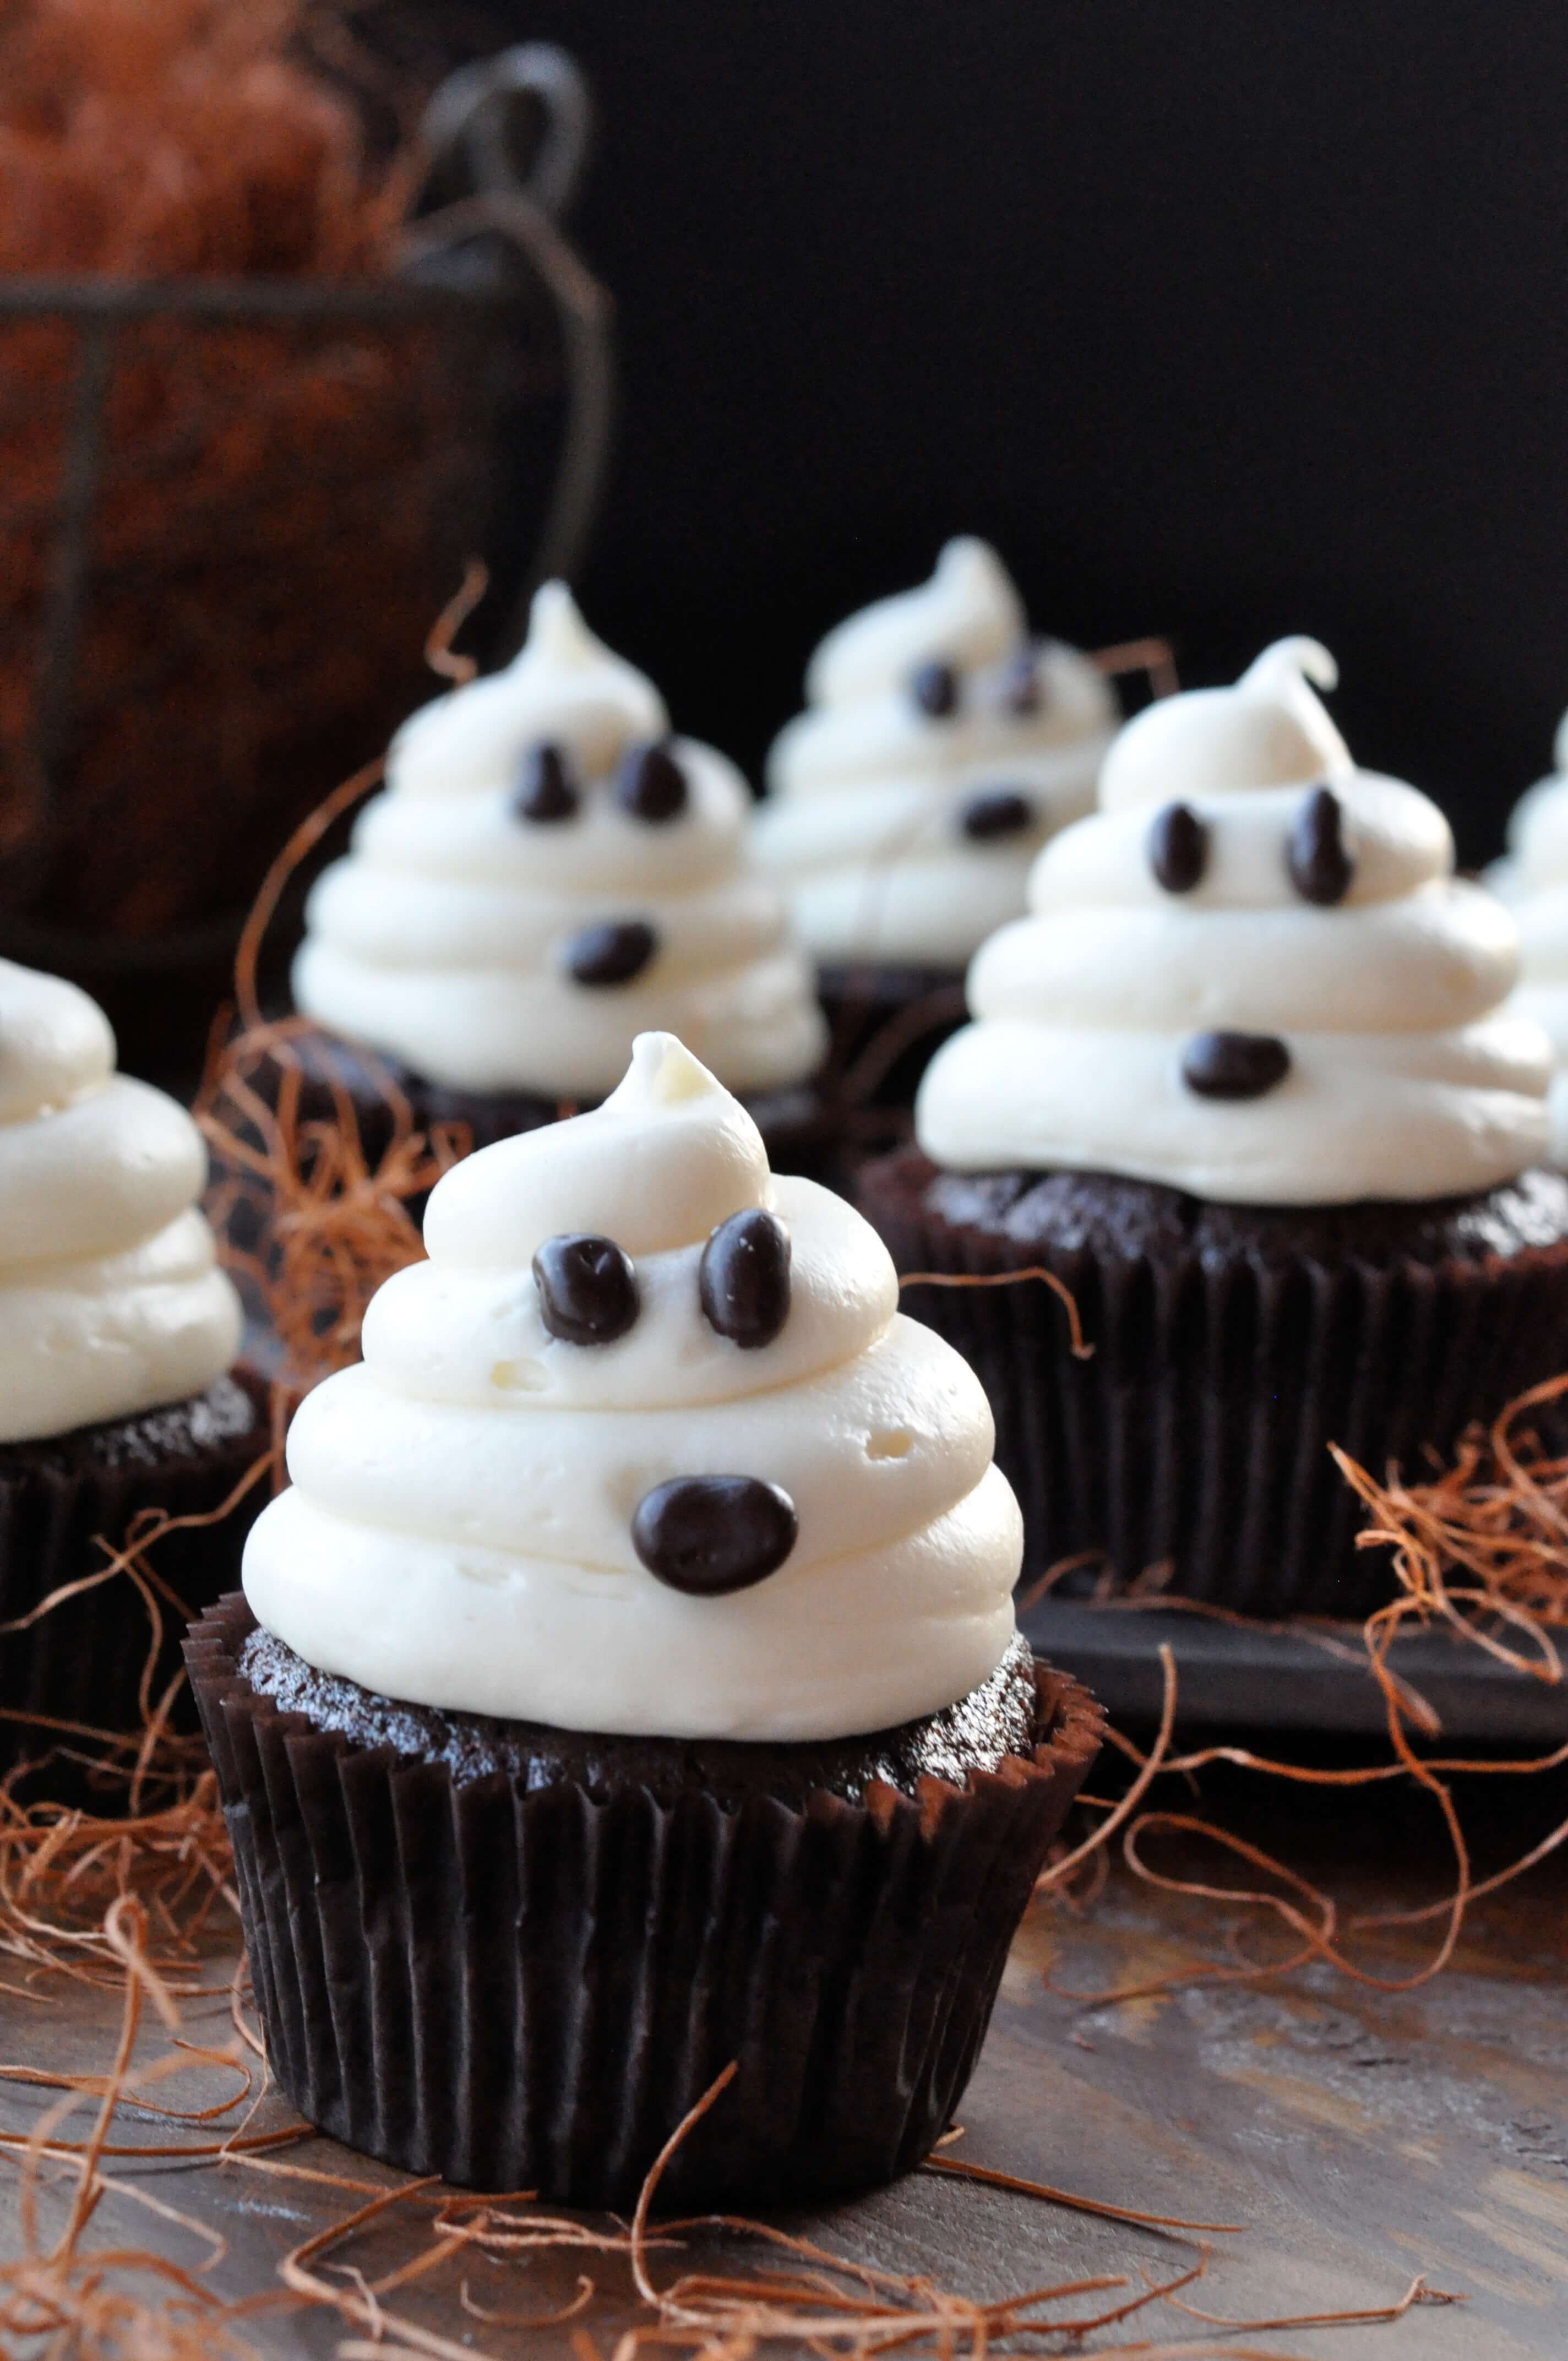 Halloween Cakes Recipes With Pictures  Halloween Ghosts on Carrot Cake Recipe—Fast and Easy